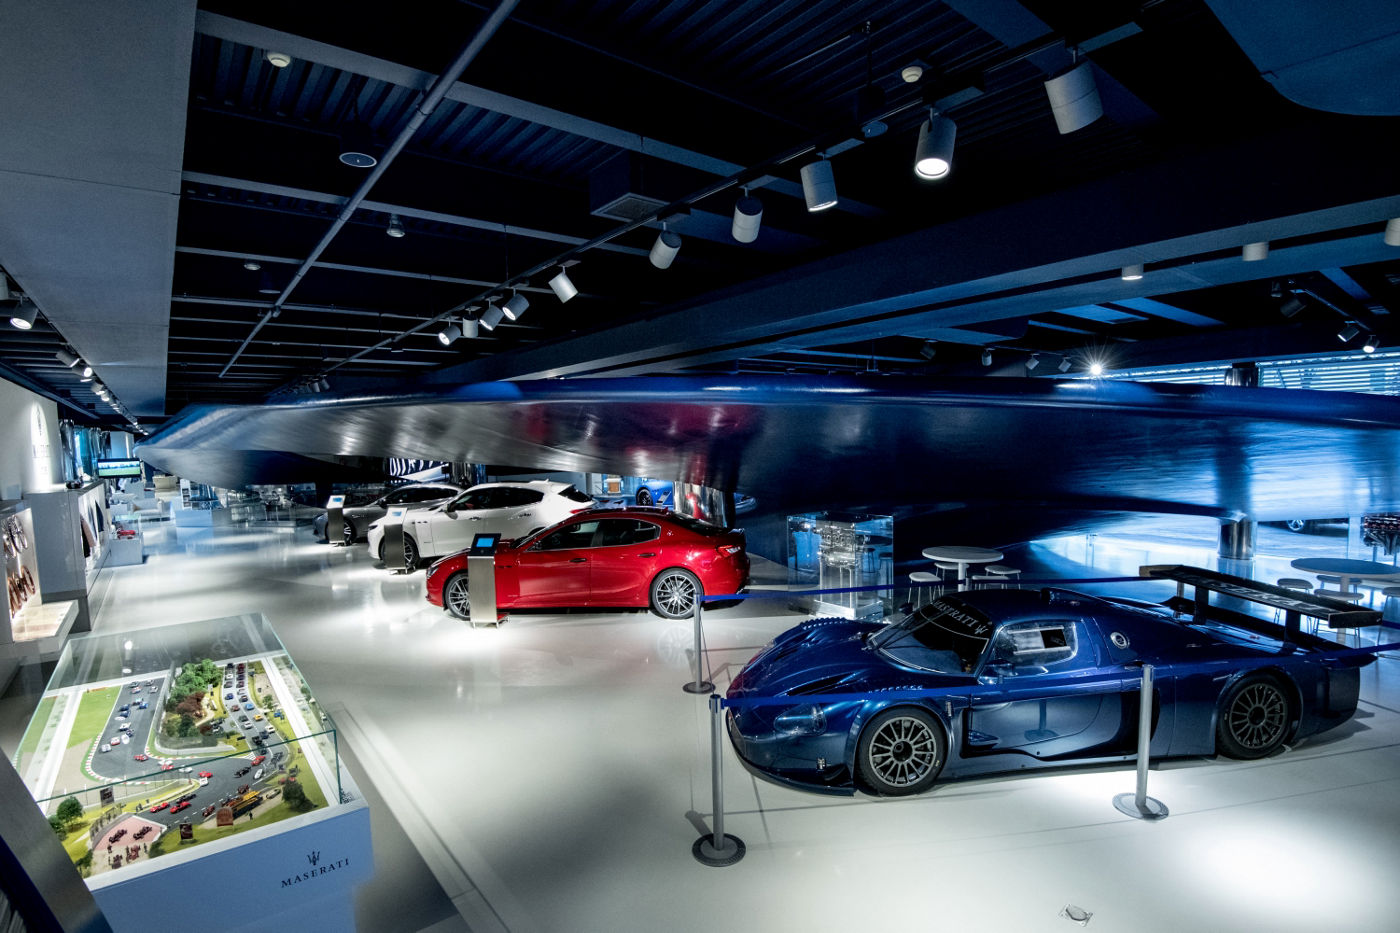 Maserati Showroom in Modena